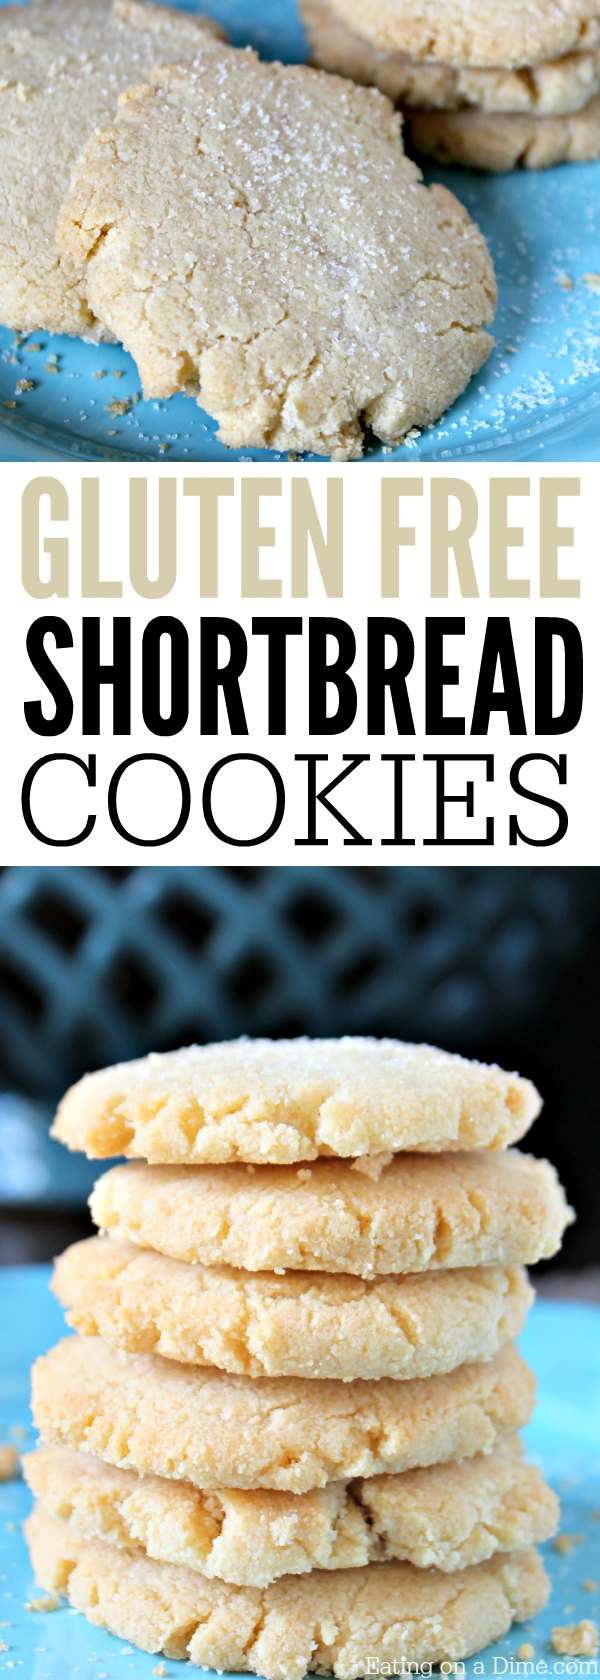 Looking for an delicious gluten free cookies recipe? You are going to love this Easy Gluten free shortbread cookies recipe.